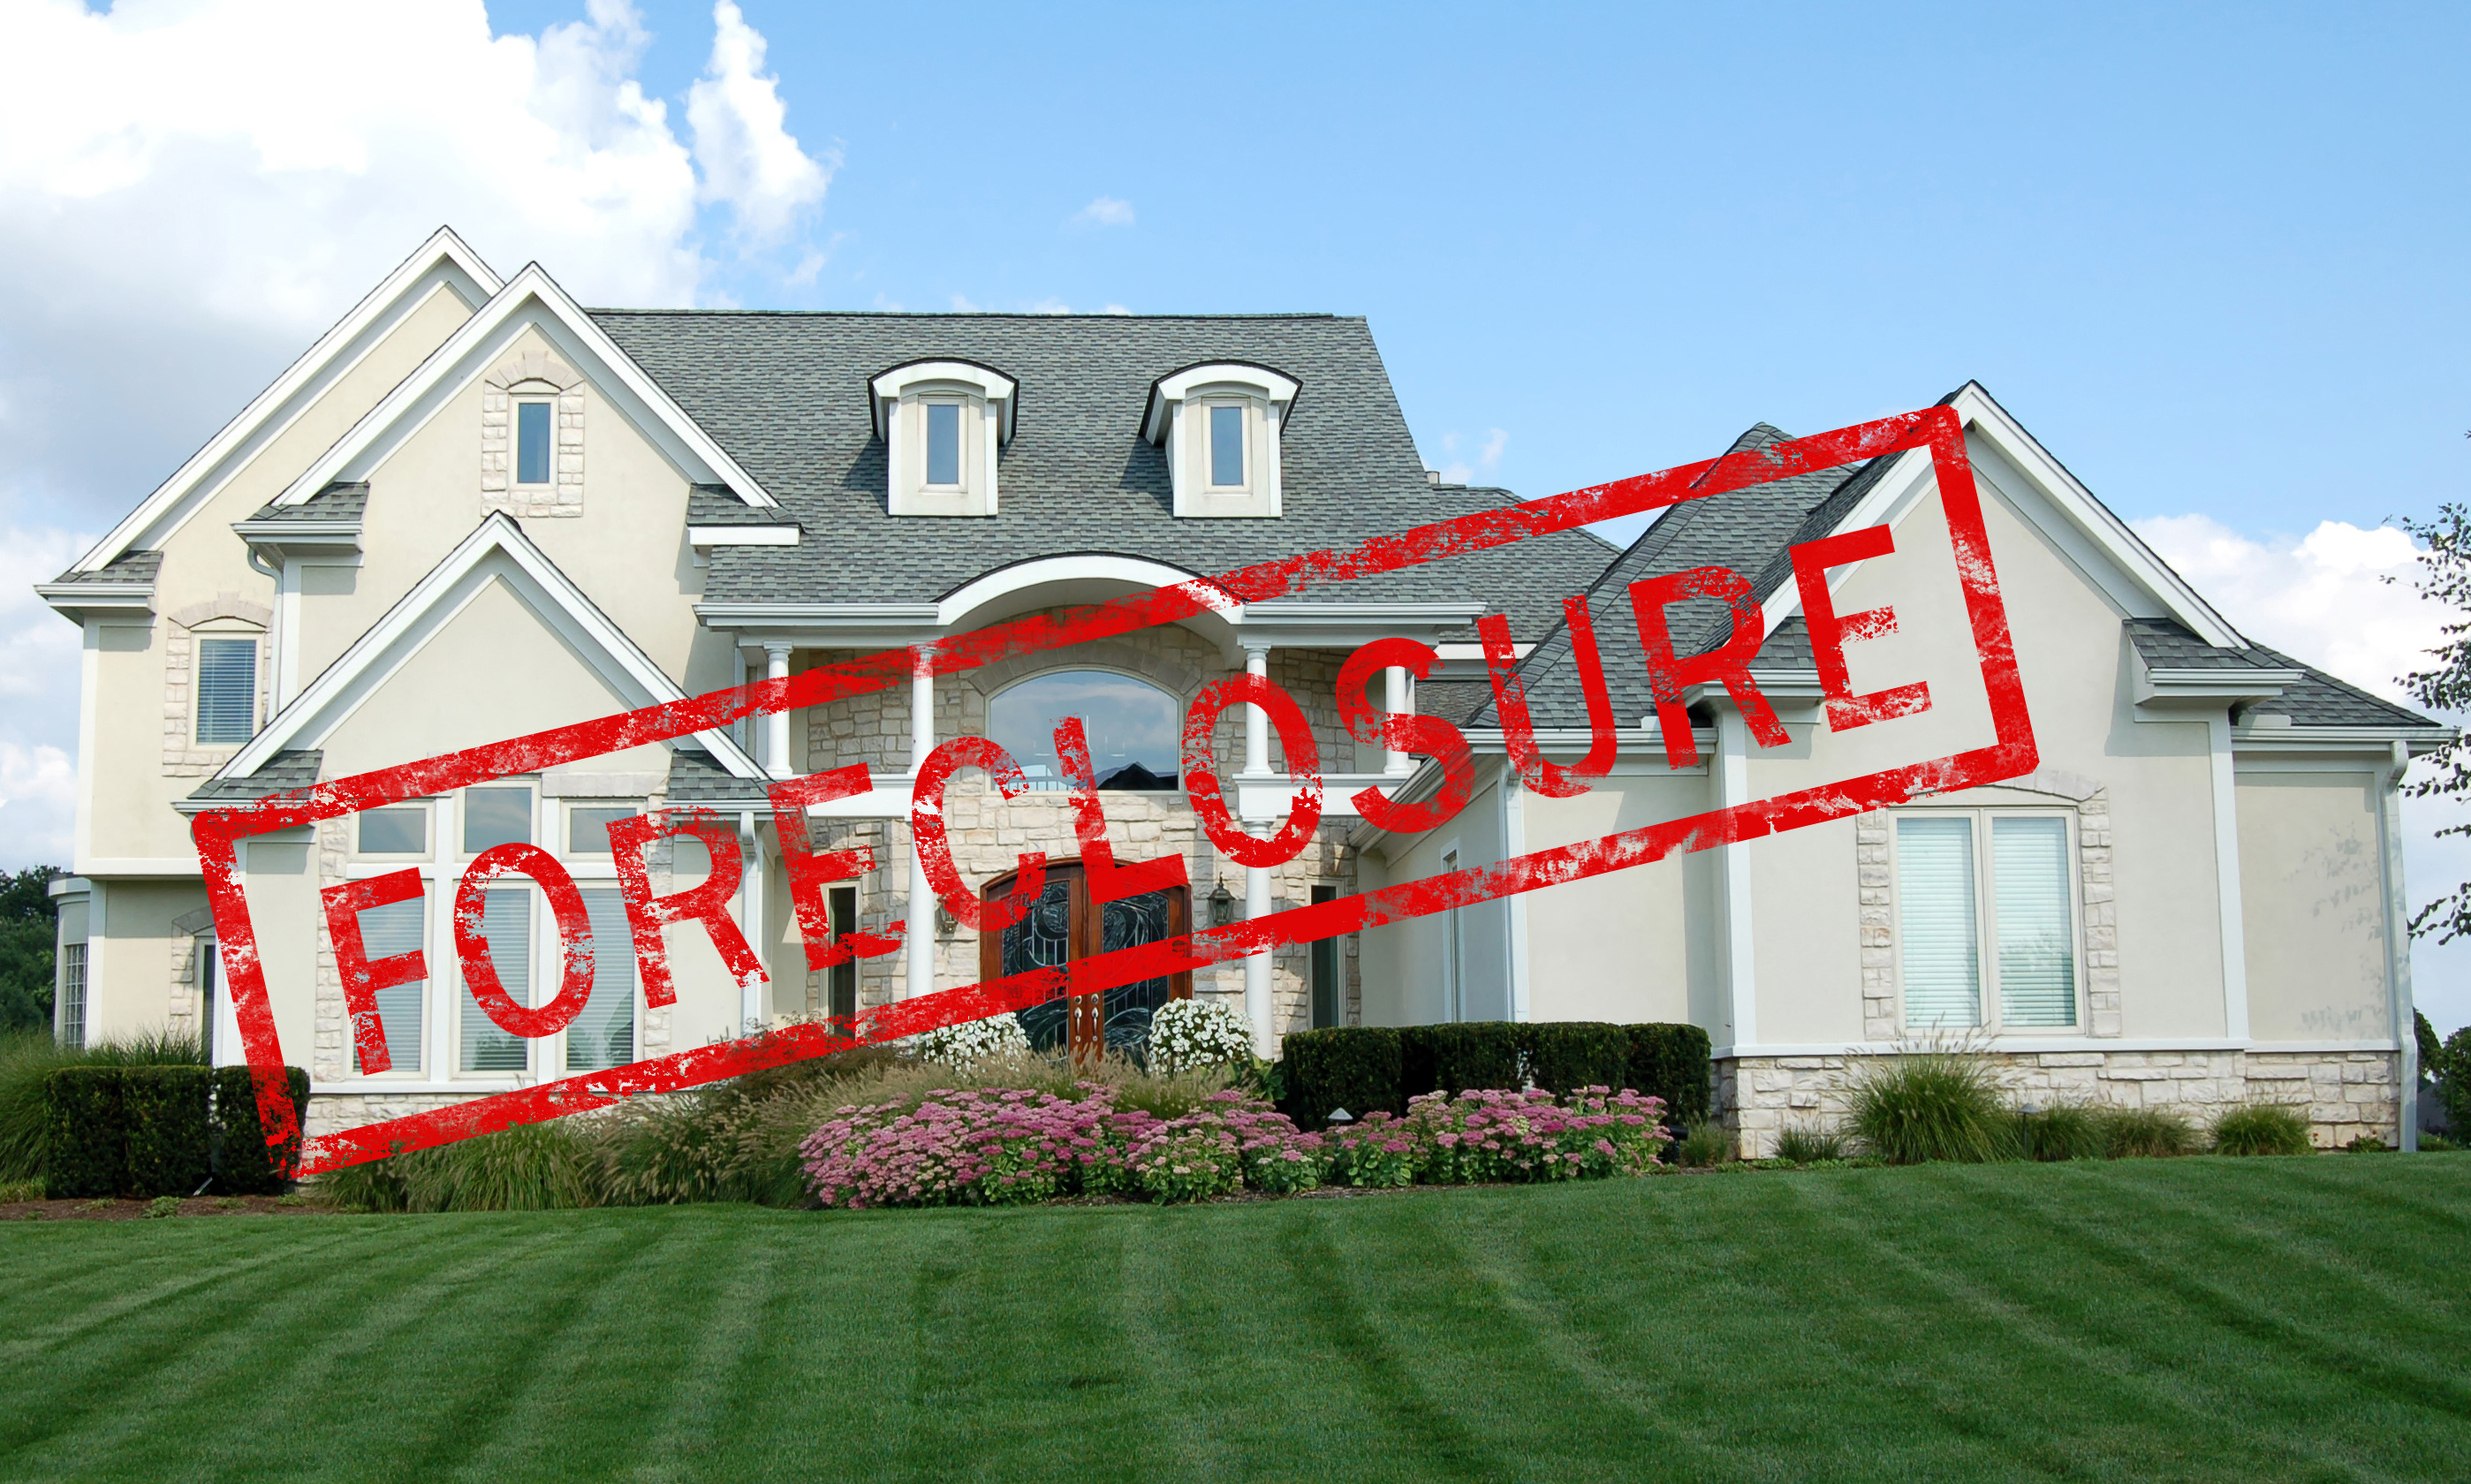 Call Crest Appraisal Services when you need valuations for King foreclosures